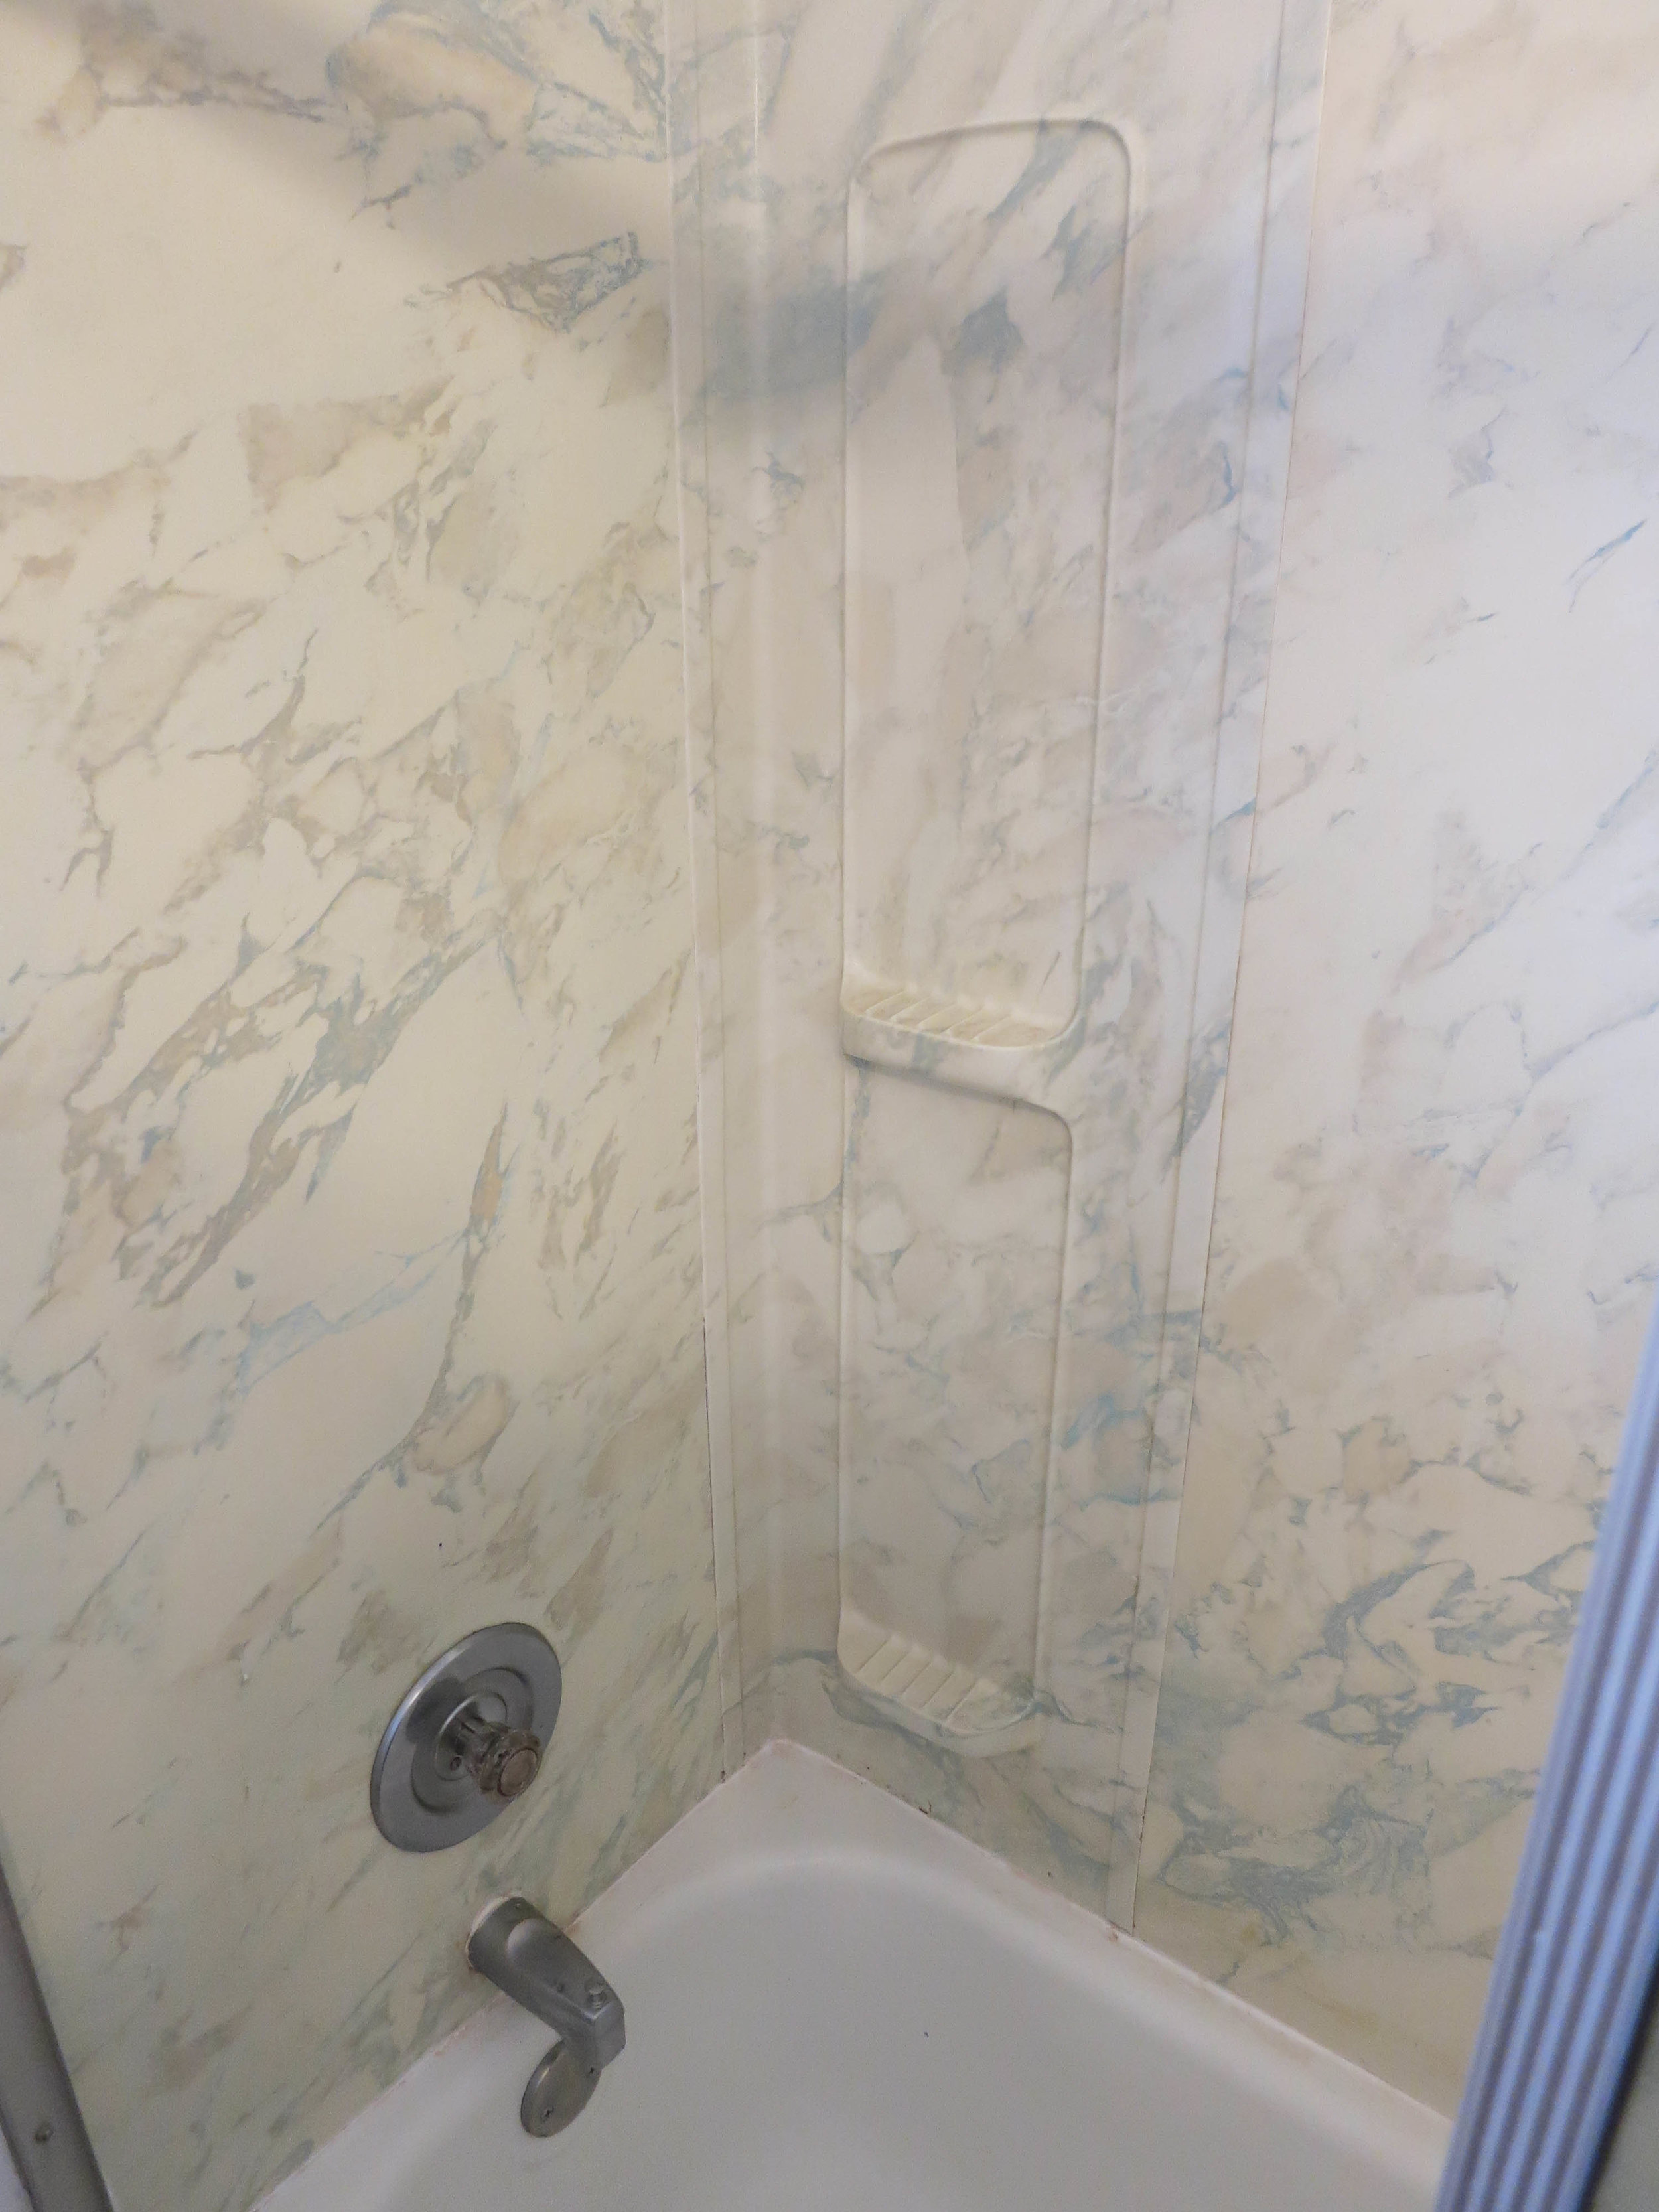 Old shower walls